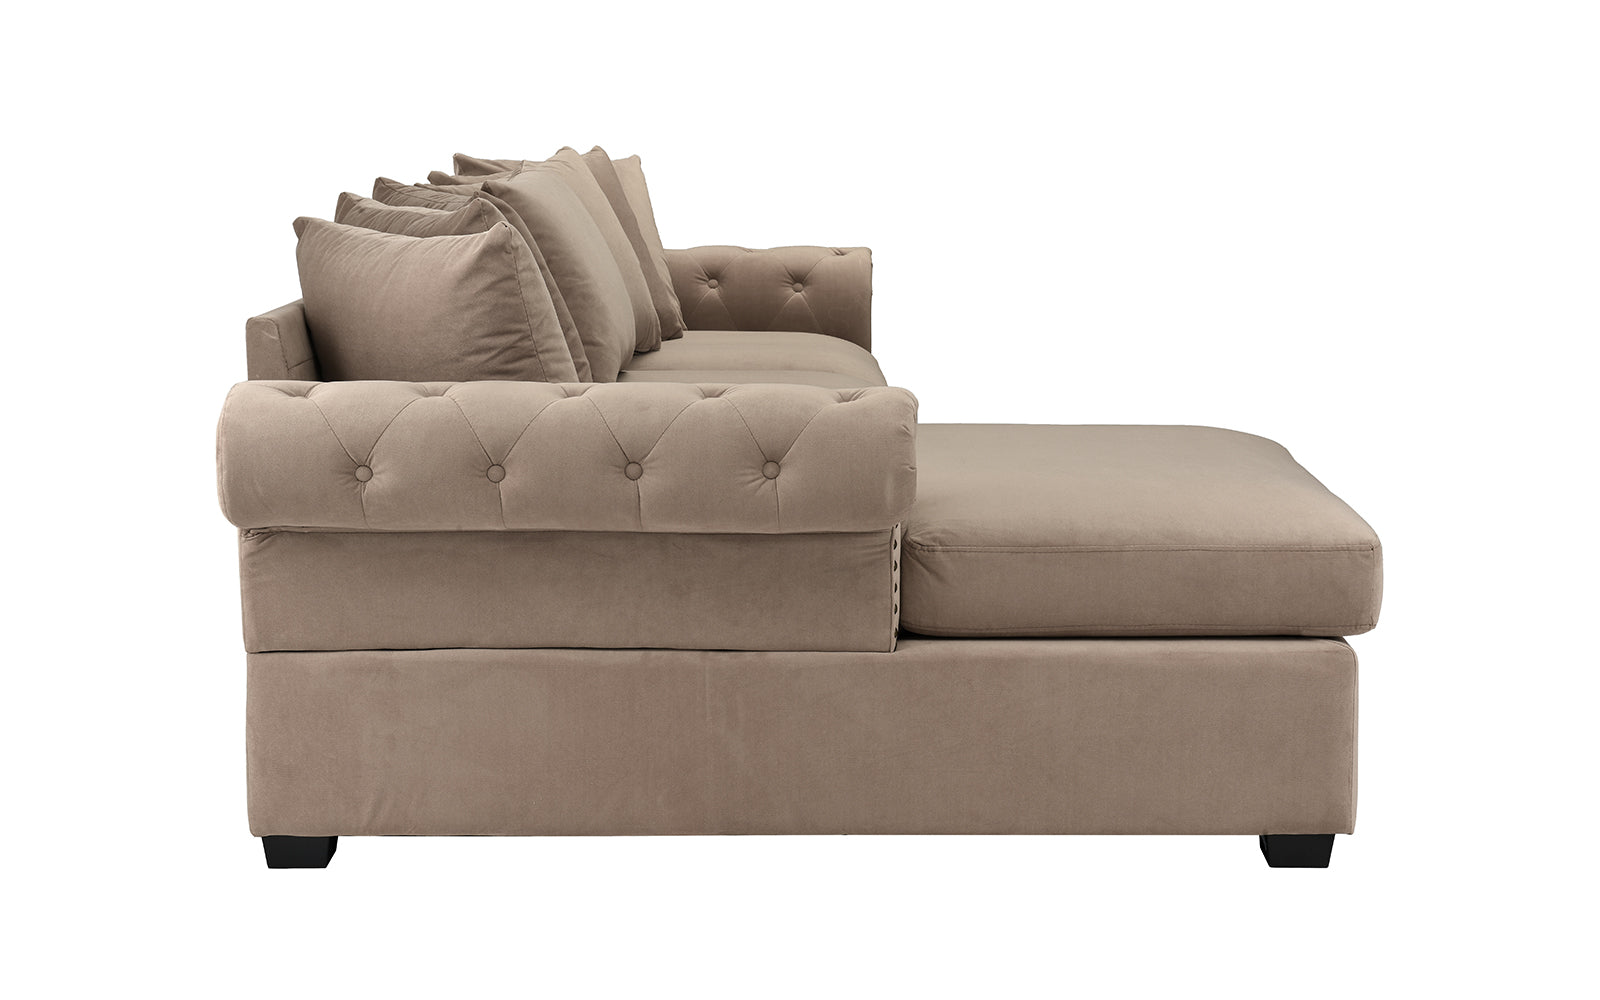 Melina Classic Victorian-Inspired Velvet Sectional Sofa with Left Chaise